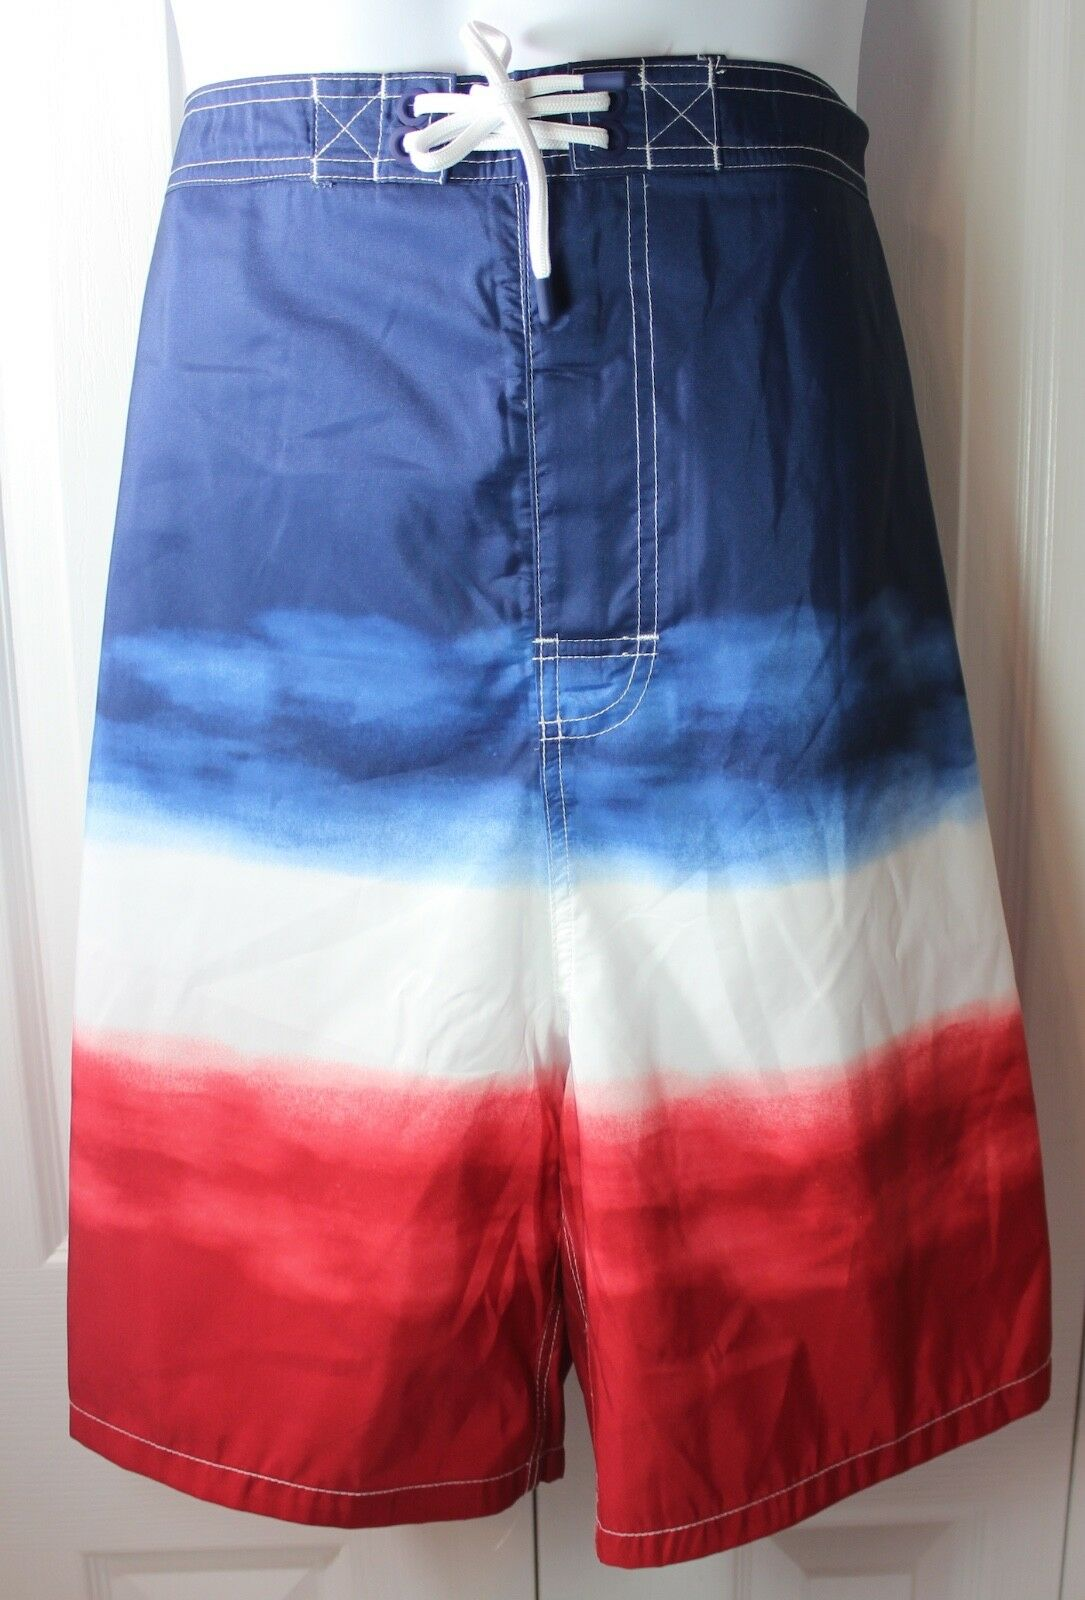 Polo Ralph Lauren 3XB RED WHITE blueE Ombre American USA Swim Trunks NWT